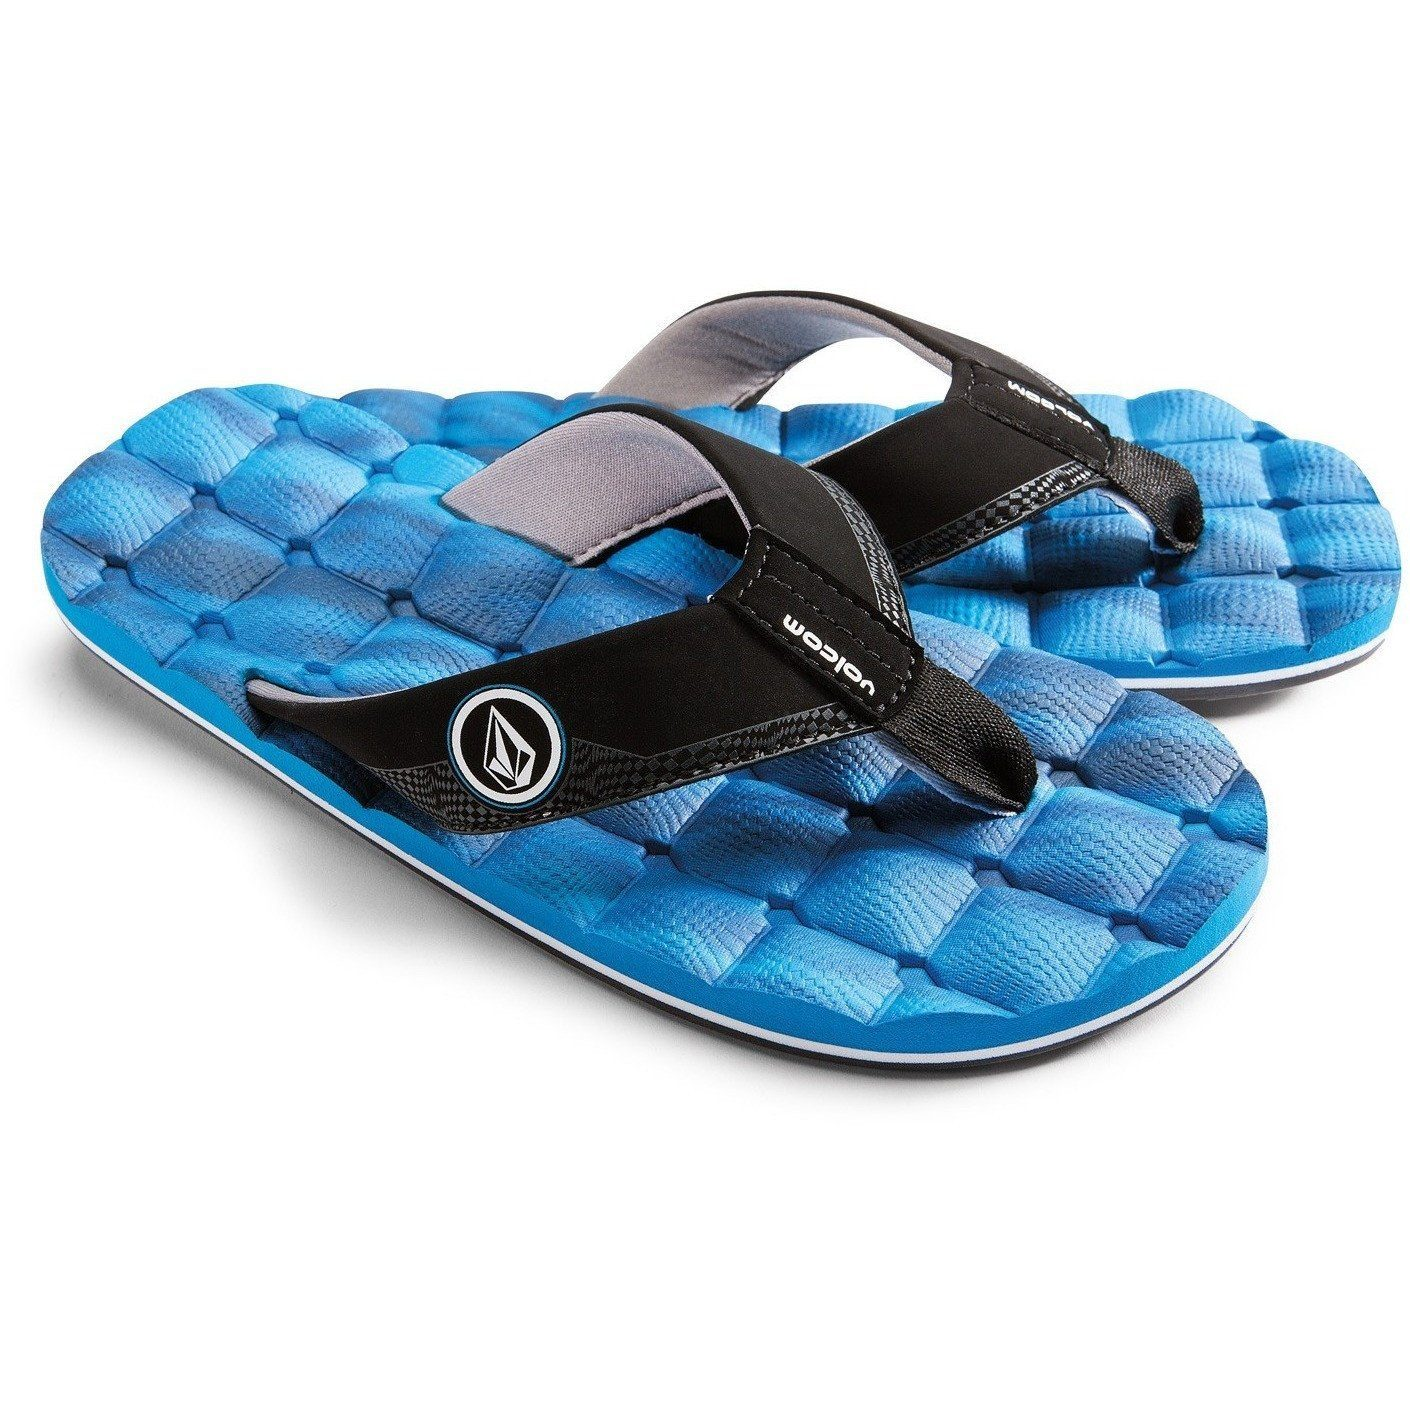 dbe4f0c040cc Volcom Kids Recliner Sandals